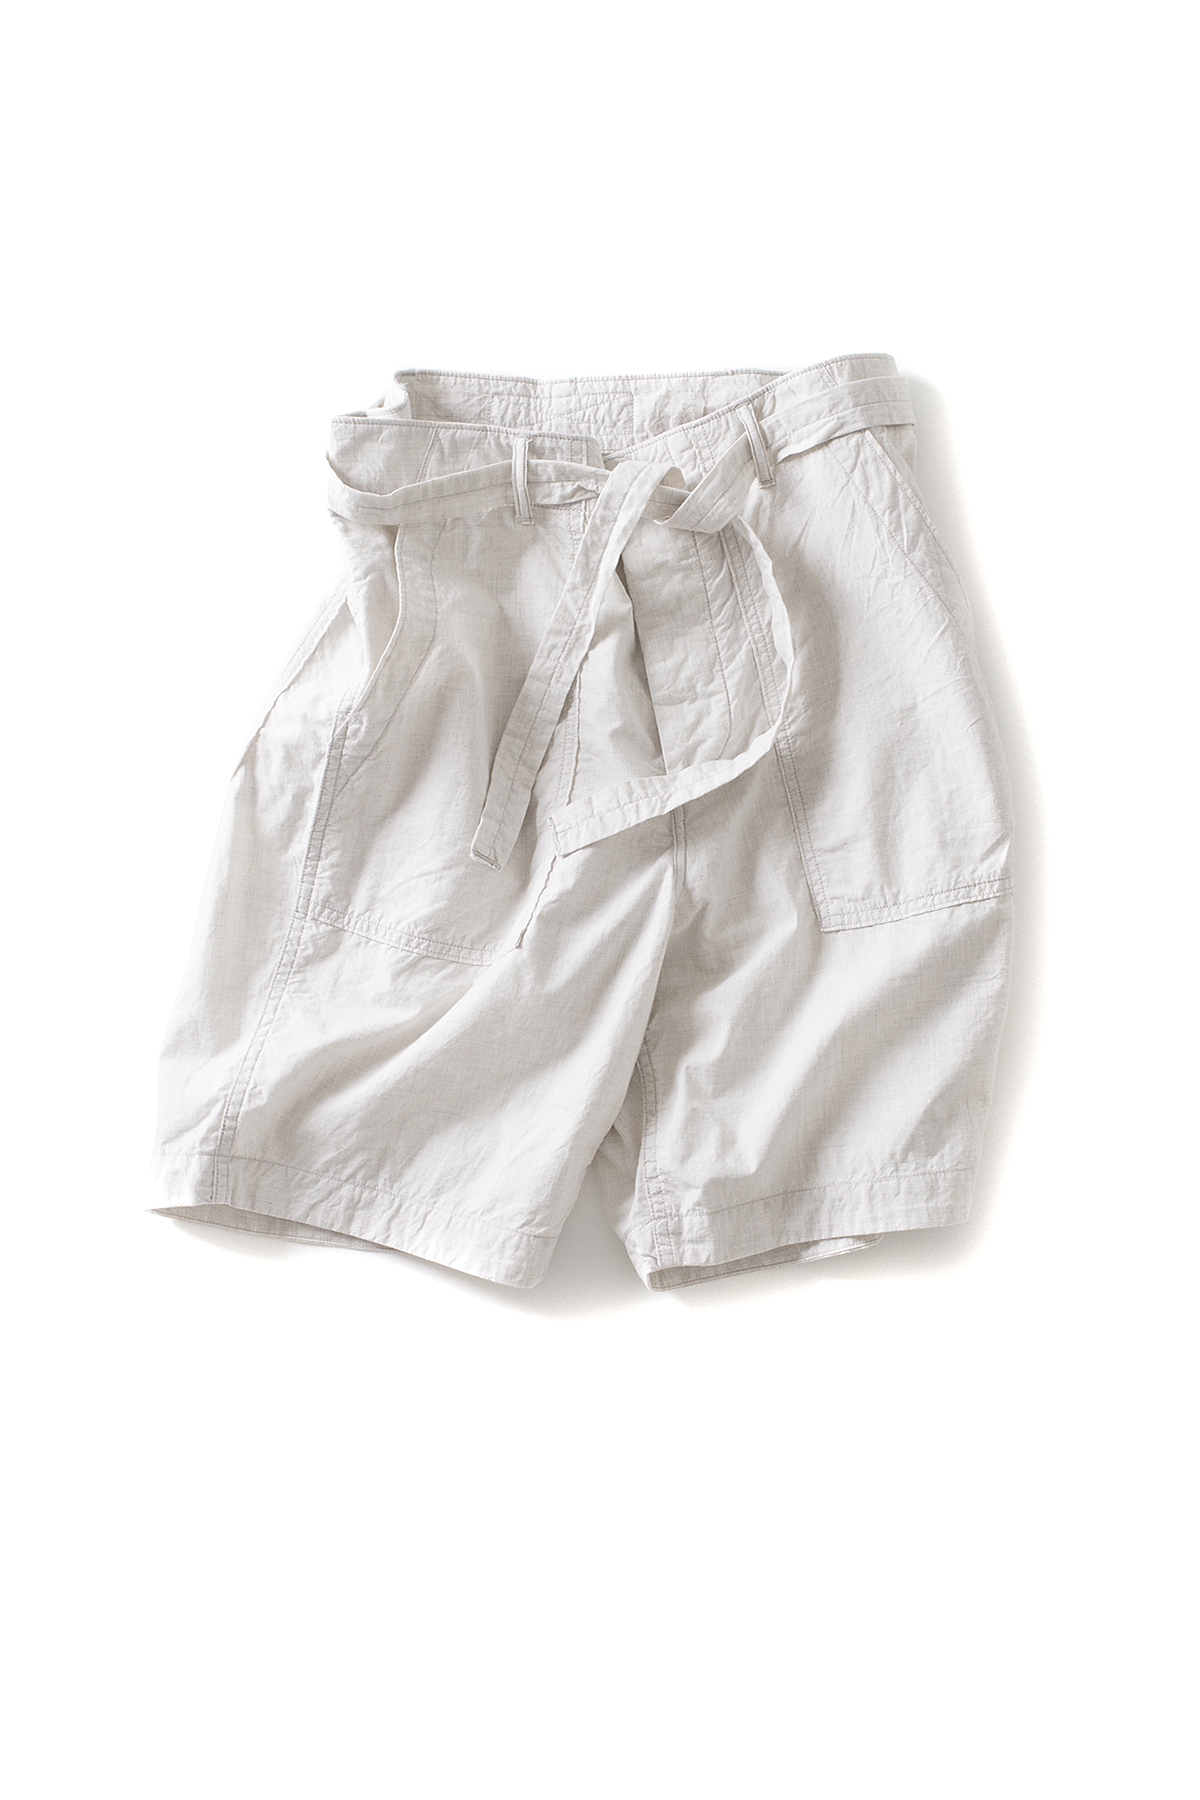 A vontade : Utility Shorts W/Belt (Oatmeal)